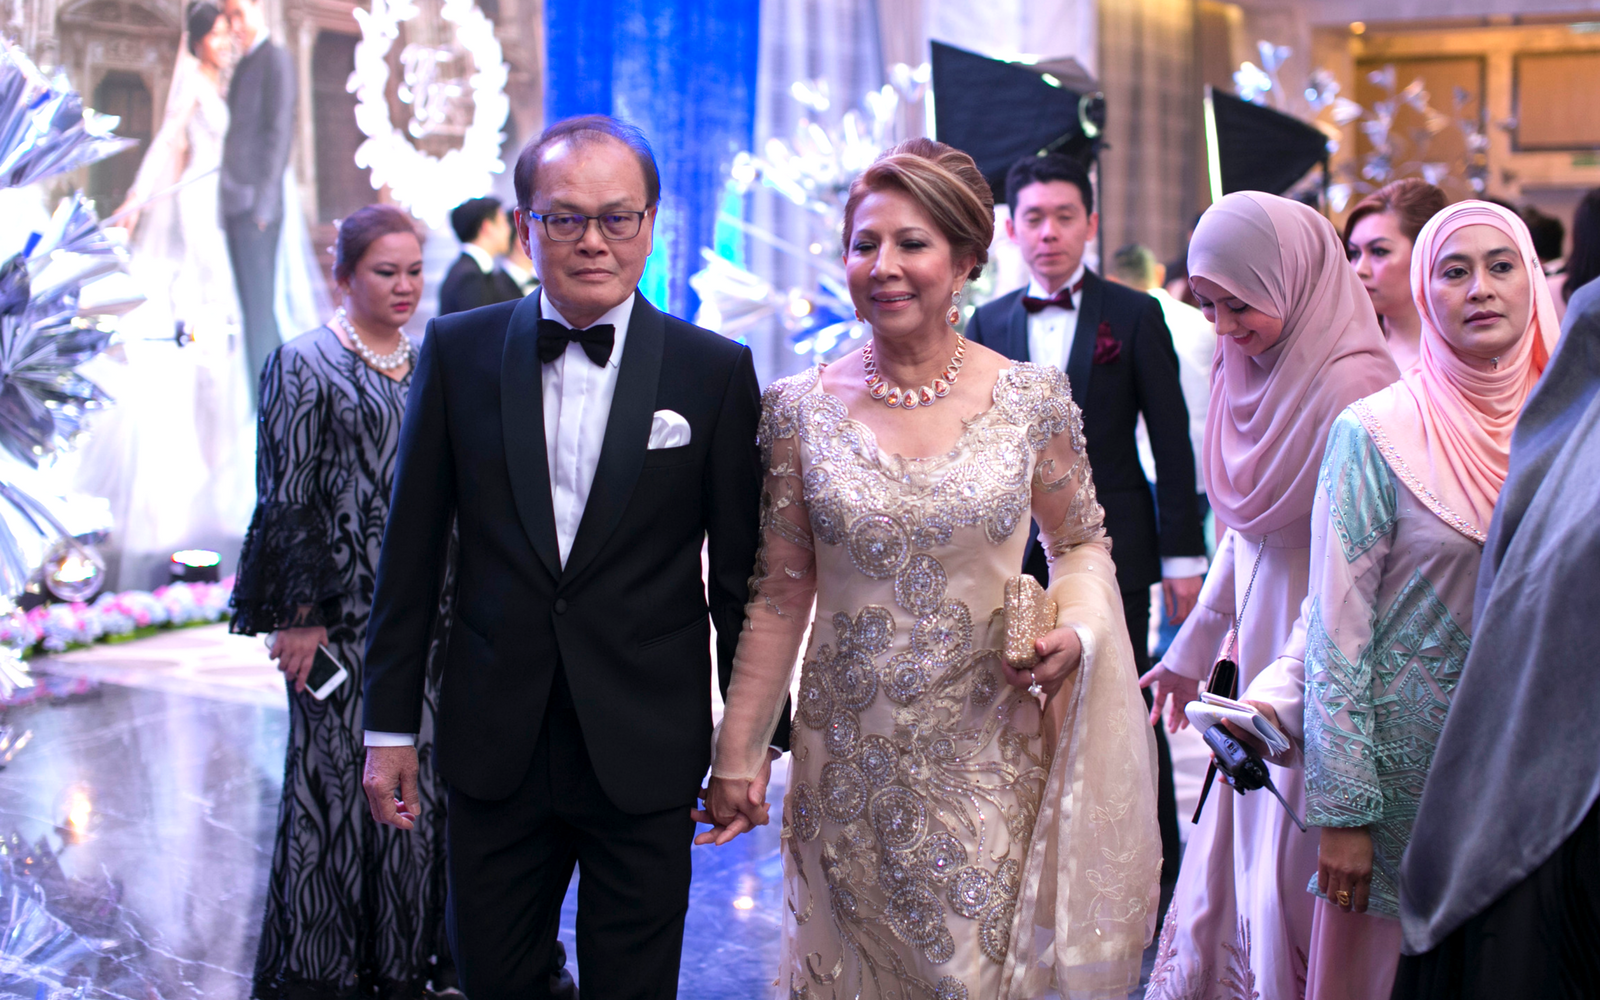 Groom's parents, Mr. Razali Zainudin and Mdm. Zaiton Istiar Hussain Khan